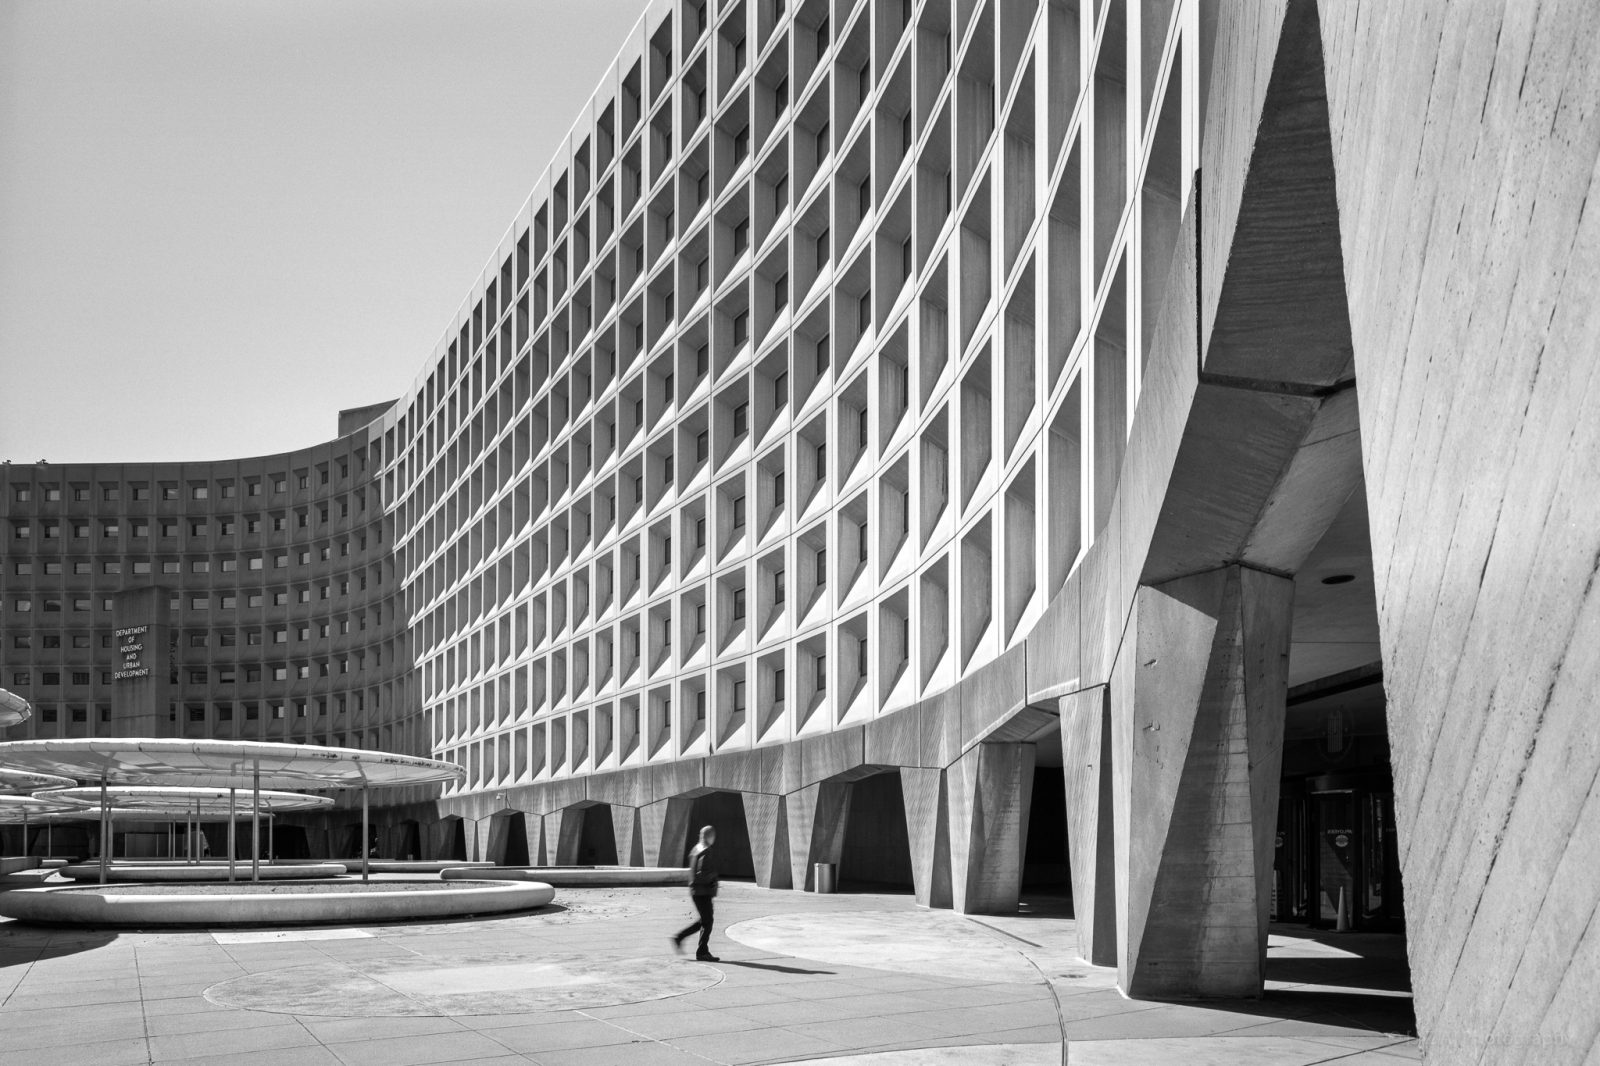 Department of Housing and Urban Development, Robert C. Weaver Federal Building